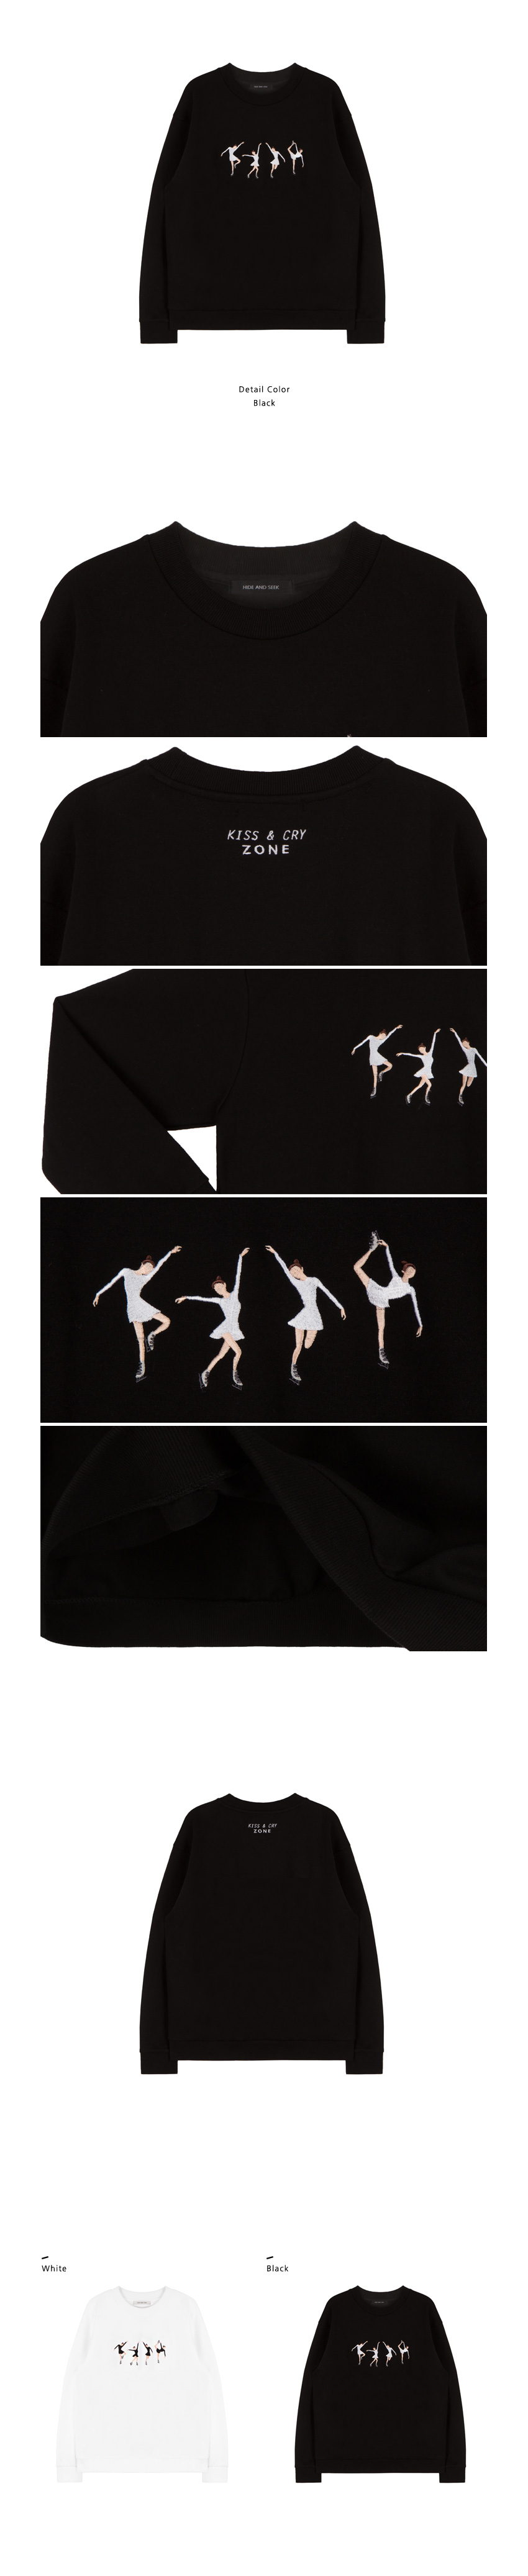 Embroidered Ice Skater Girl Sweatshirt|